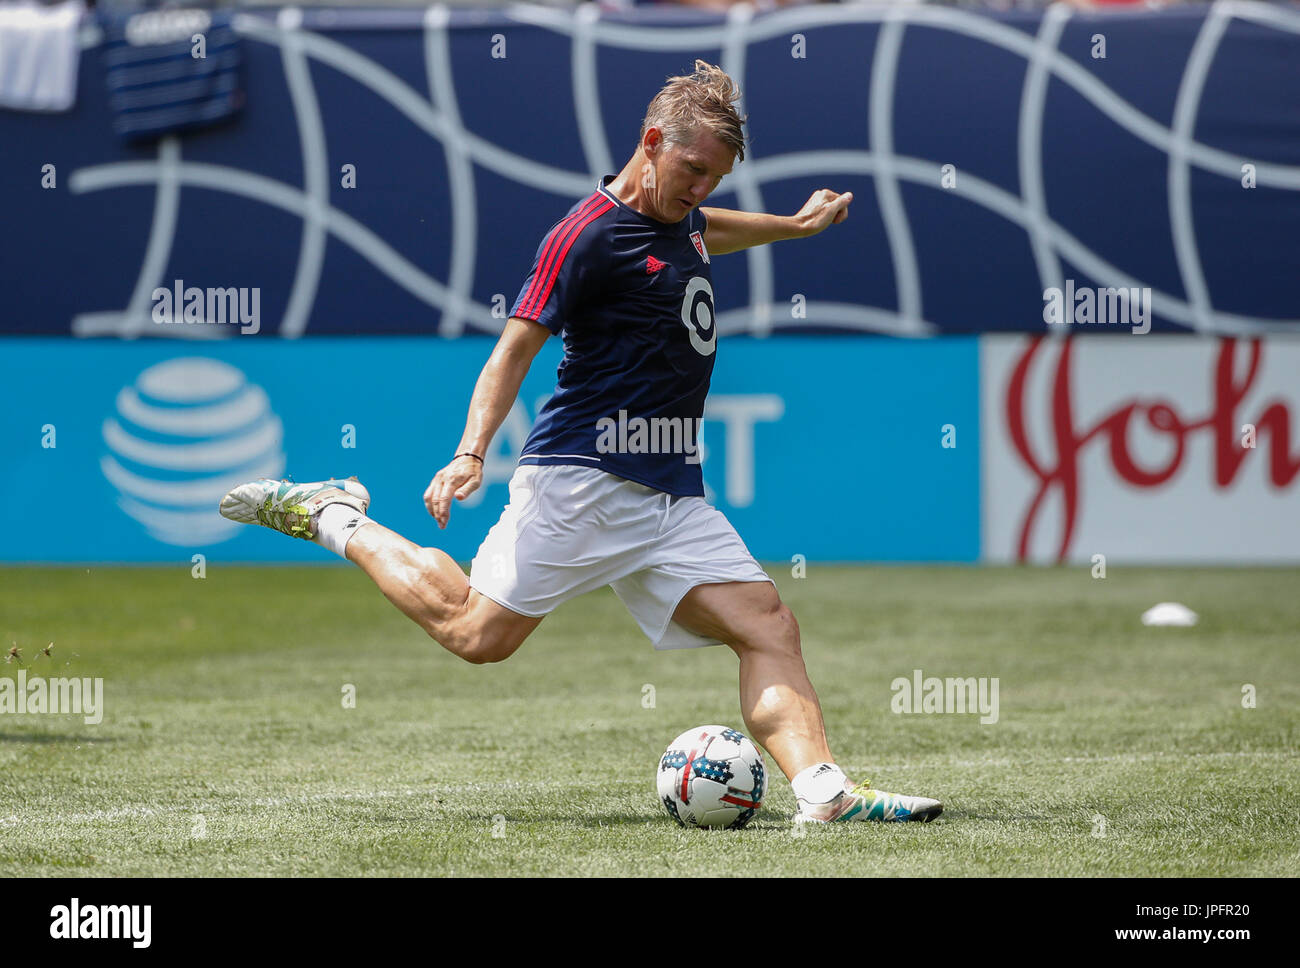 a04491a60e99 MLS All-Stars captain Bastian Schweinsteiger participates in a training  session prior to the friendly match between Real Madrid and the MLS All- Stars ...